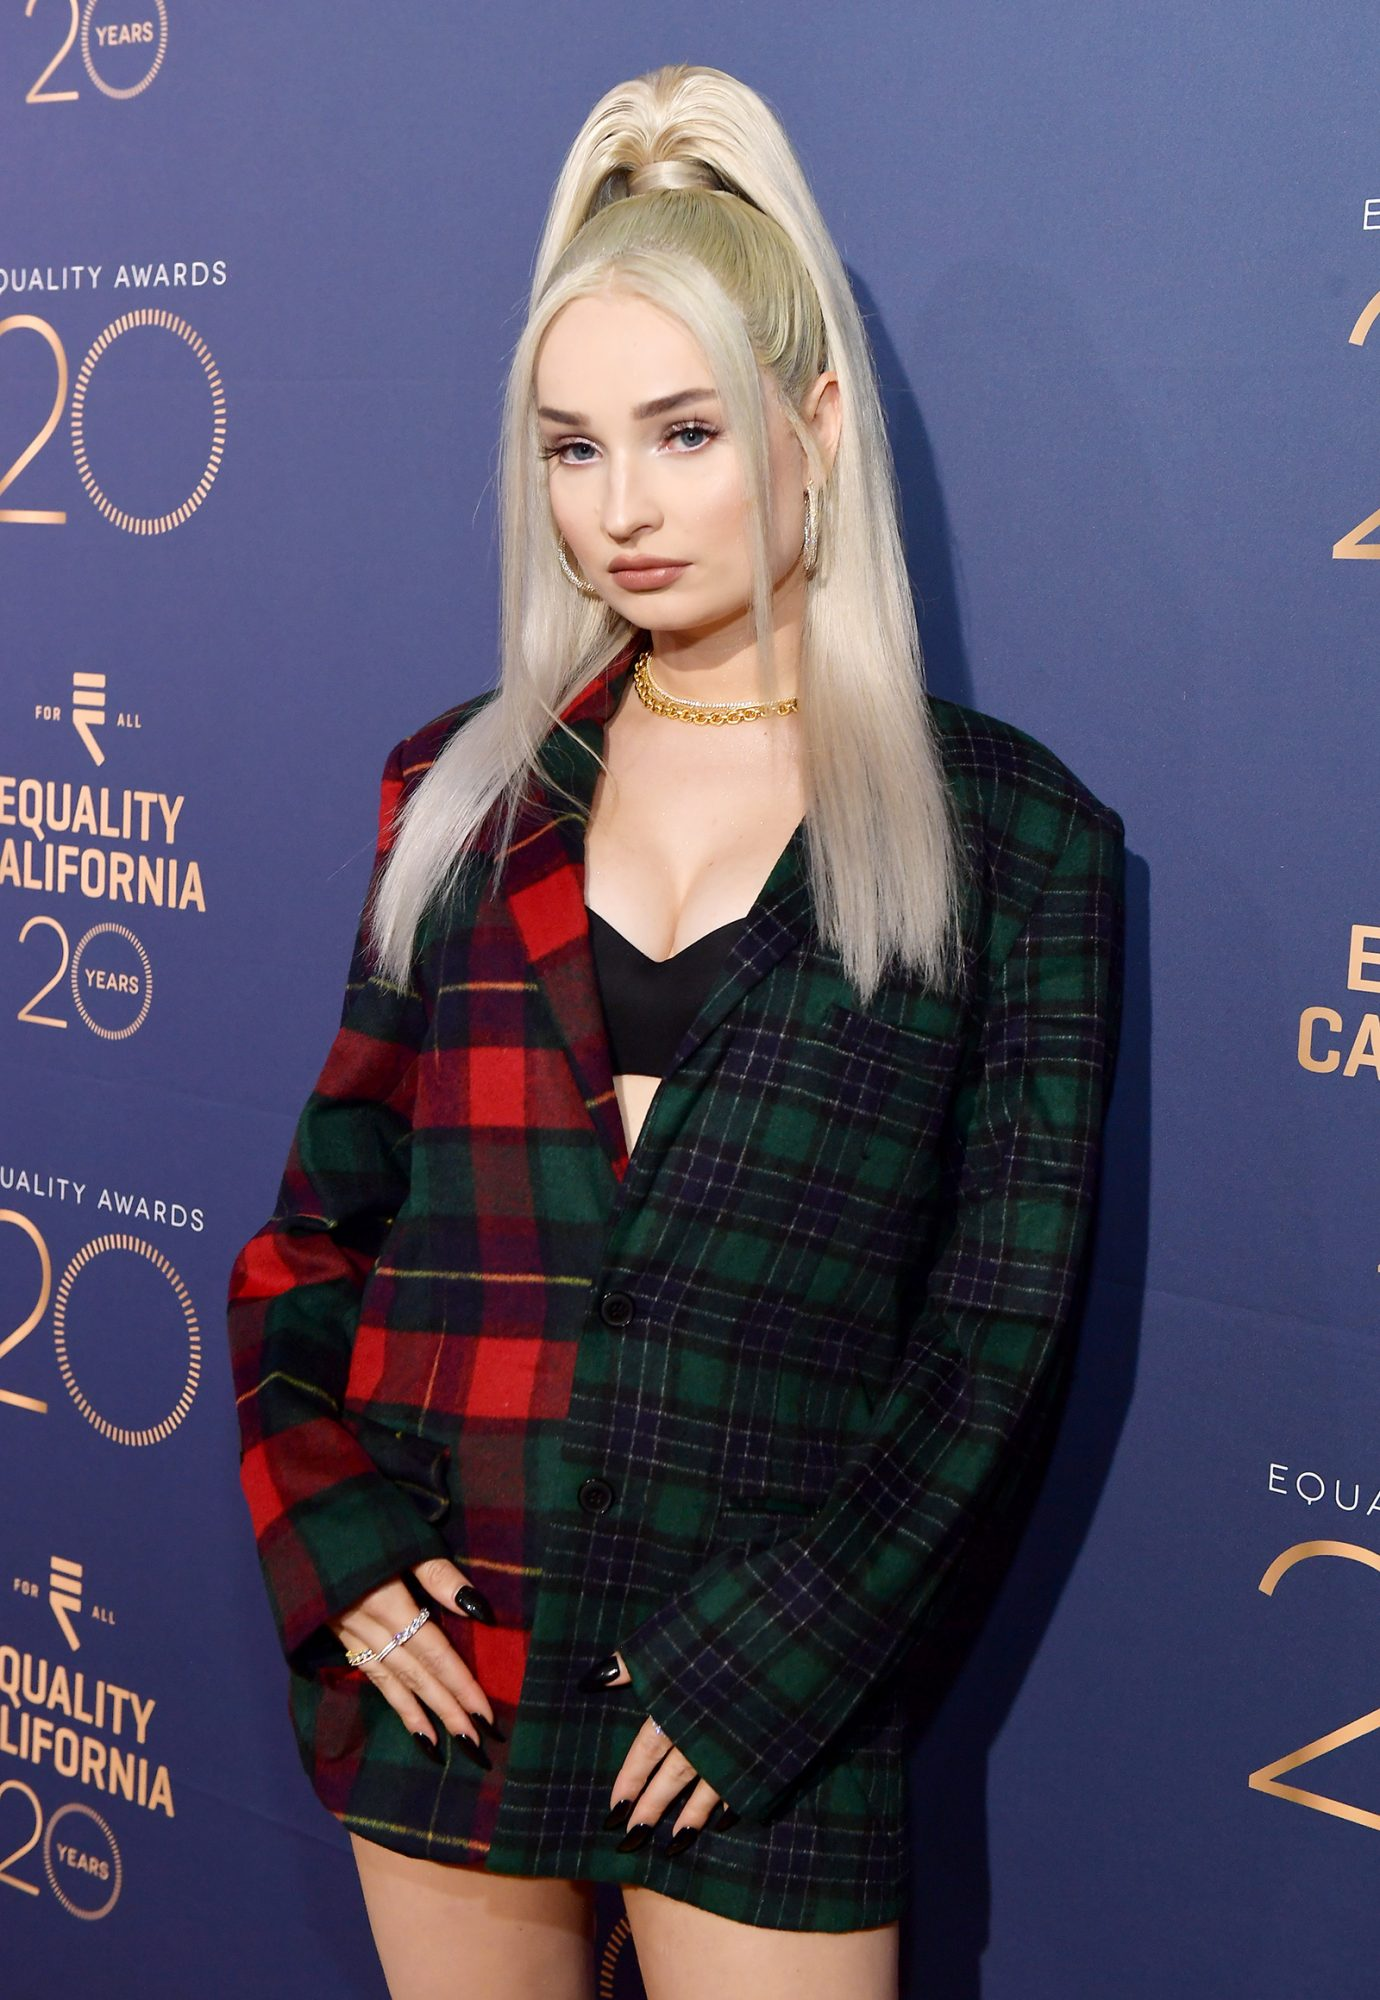 Kim Petras attends Equality California's Special 20th Anniversary Los Angeles Equality Awards at the JW Marriott Los Angeles at L.A. LIVE on September 28, 2019 in Los Angeles